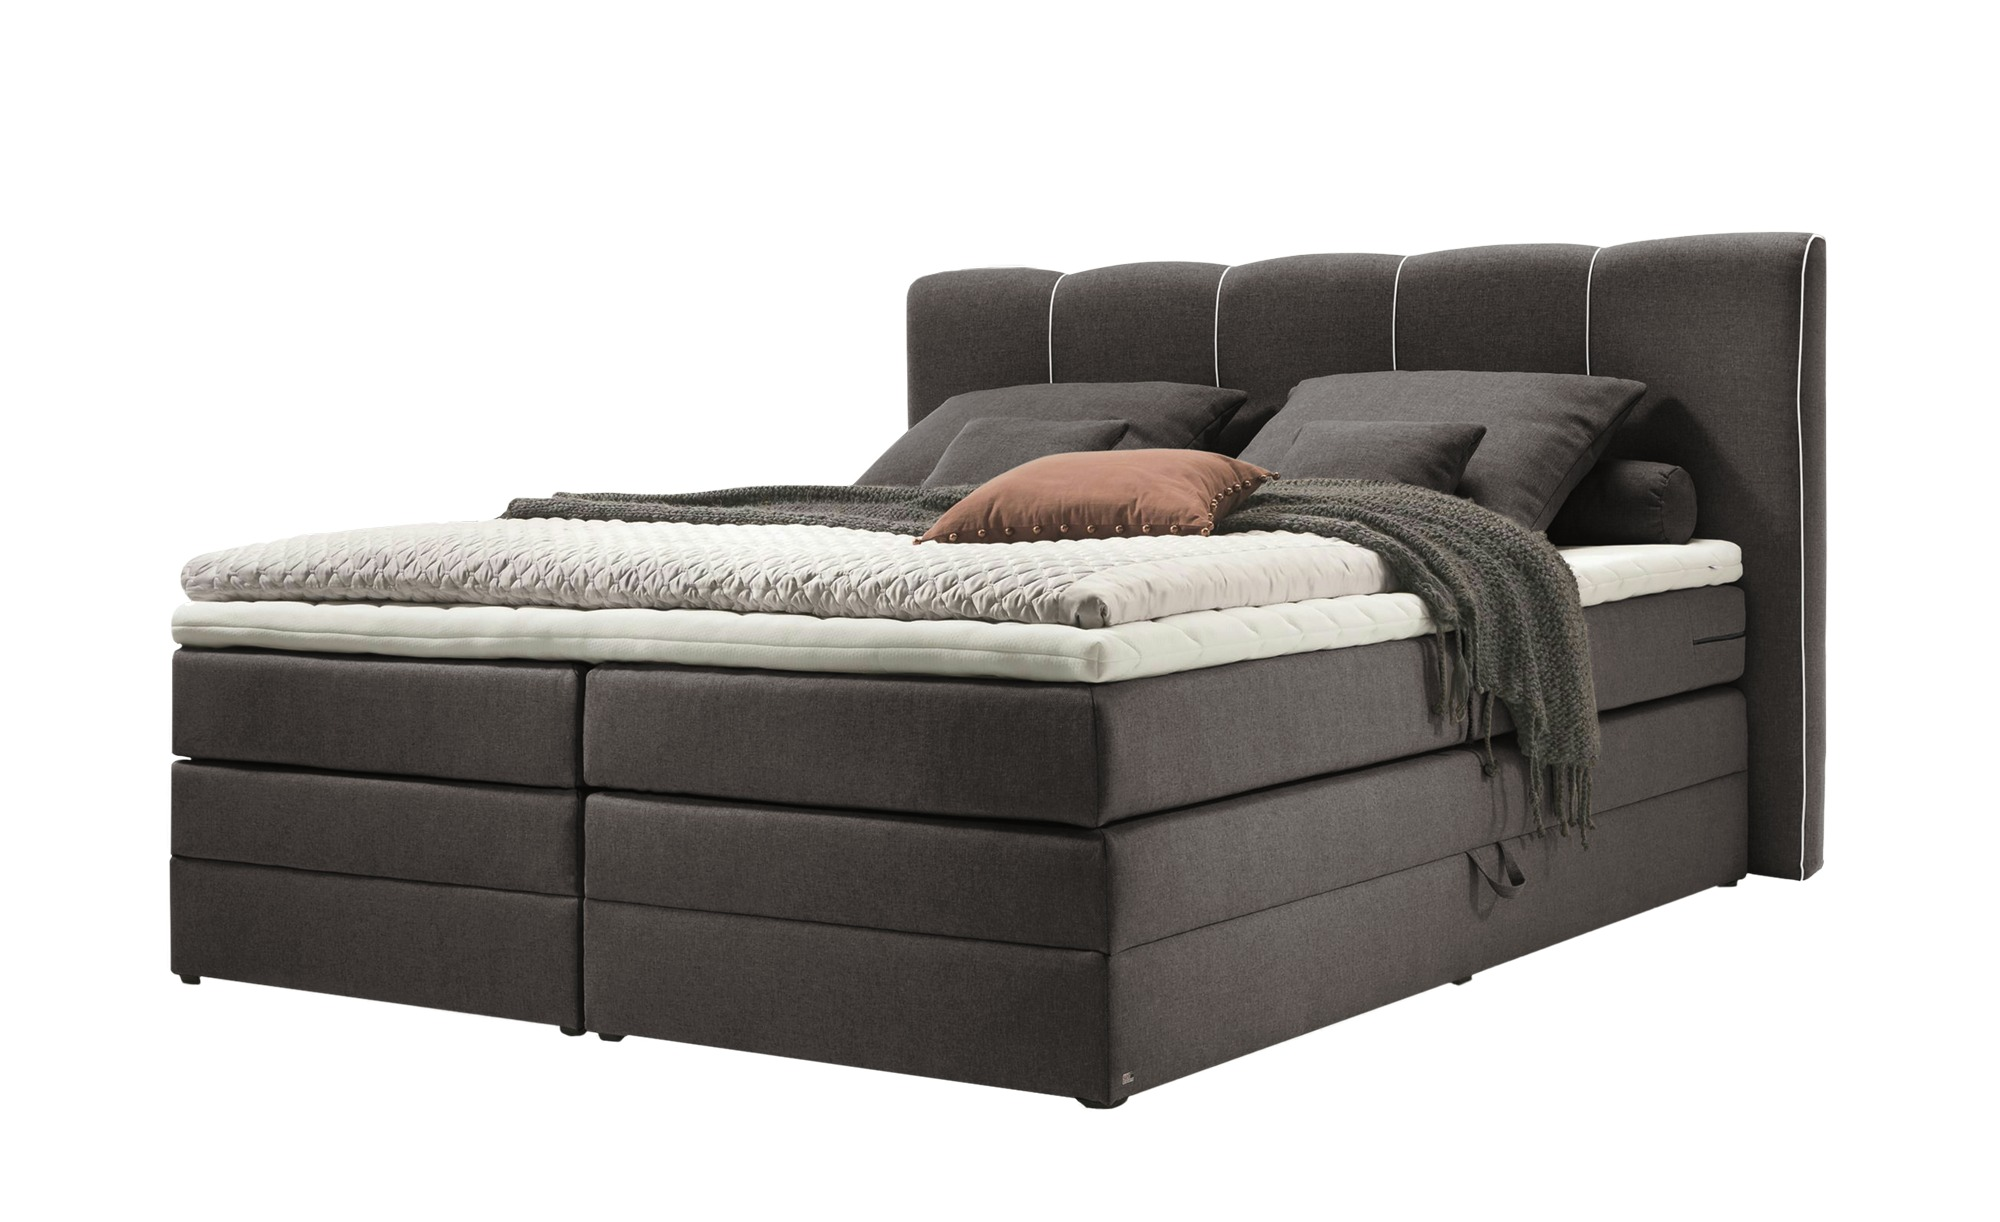 Musterring Schlafzimmer Höffner Set One By Musterring Boxspringbett 180x200 Anthrazit Memphis A Grau Maße Cm B 202 H 116 Betten Boxspringbetten Boxspringbetten Mit